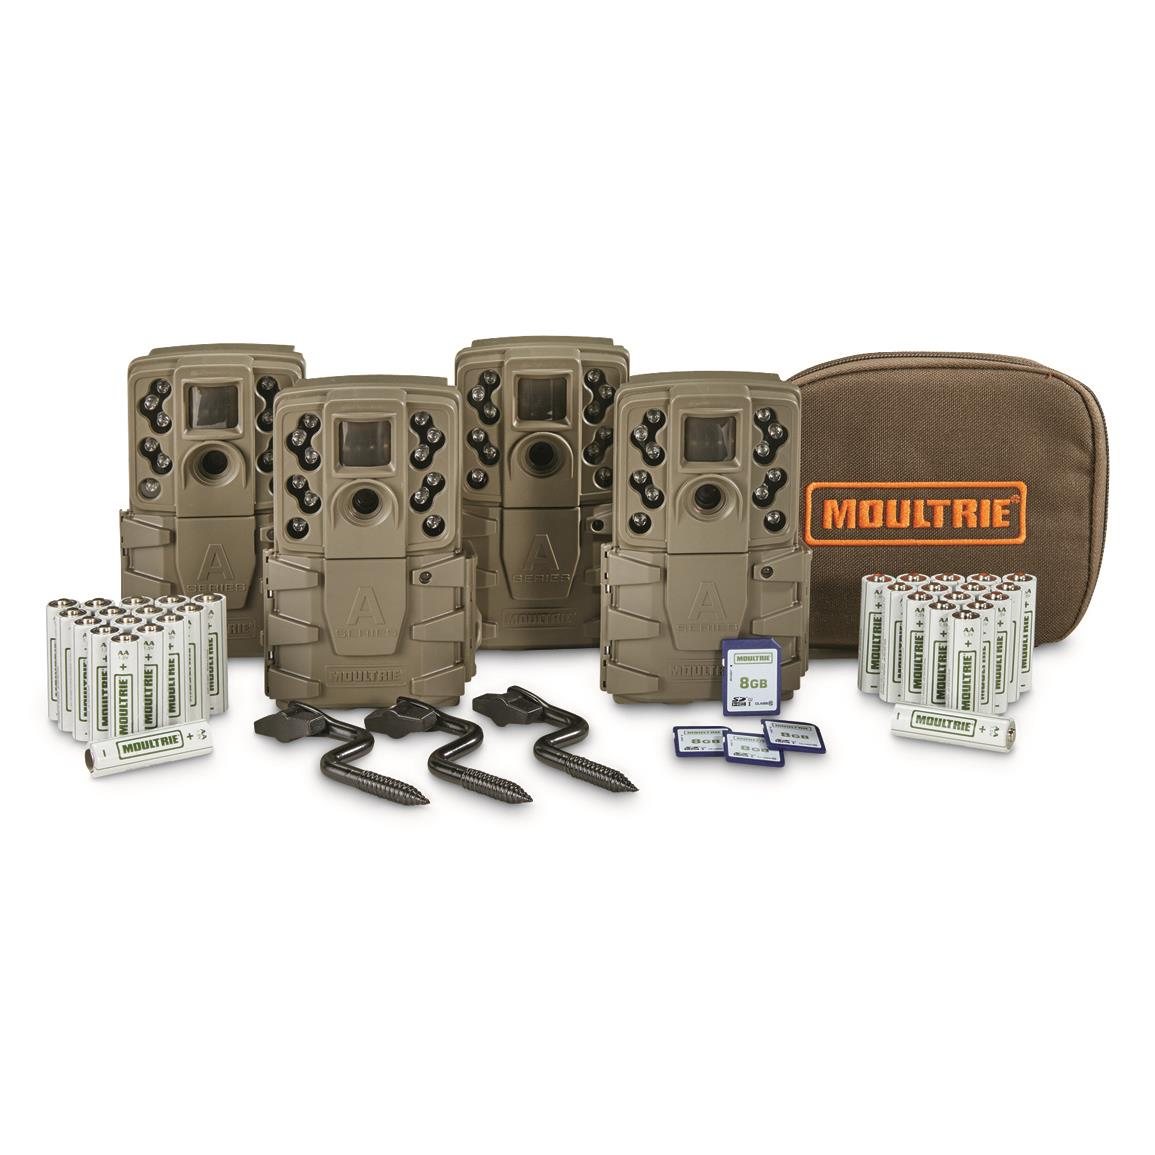 Moultrie A-25 Trail/Game Camera Bundle